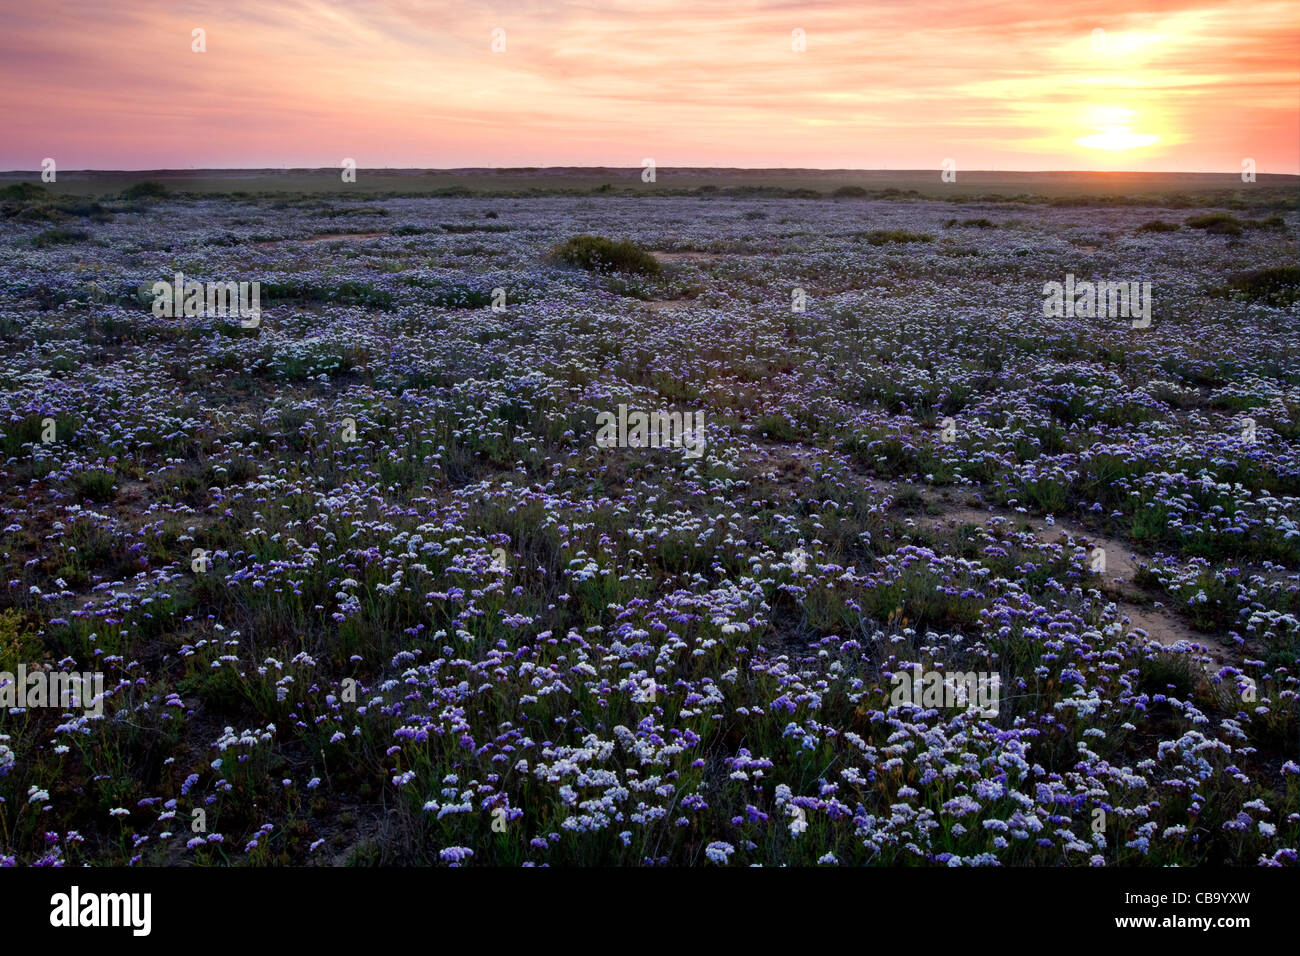 Wildflowers in bloom at sunset near Tijuana, Mexico. - Stock Image